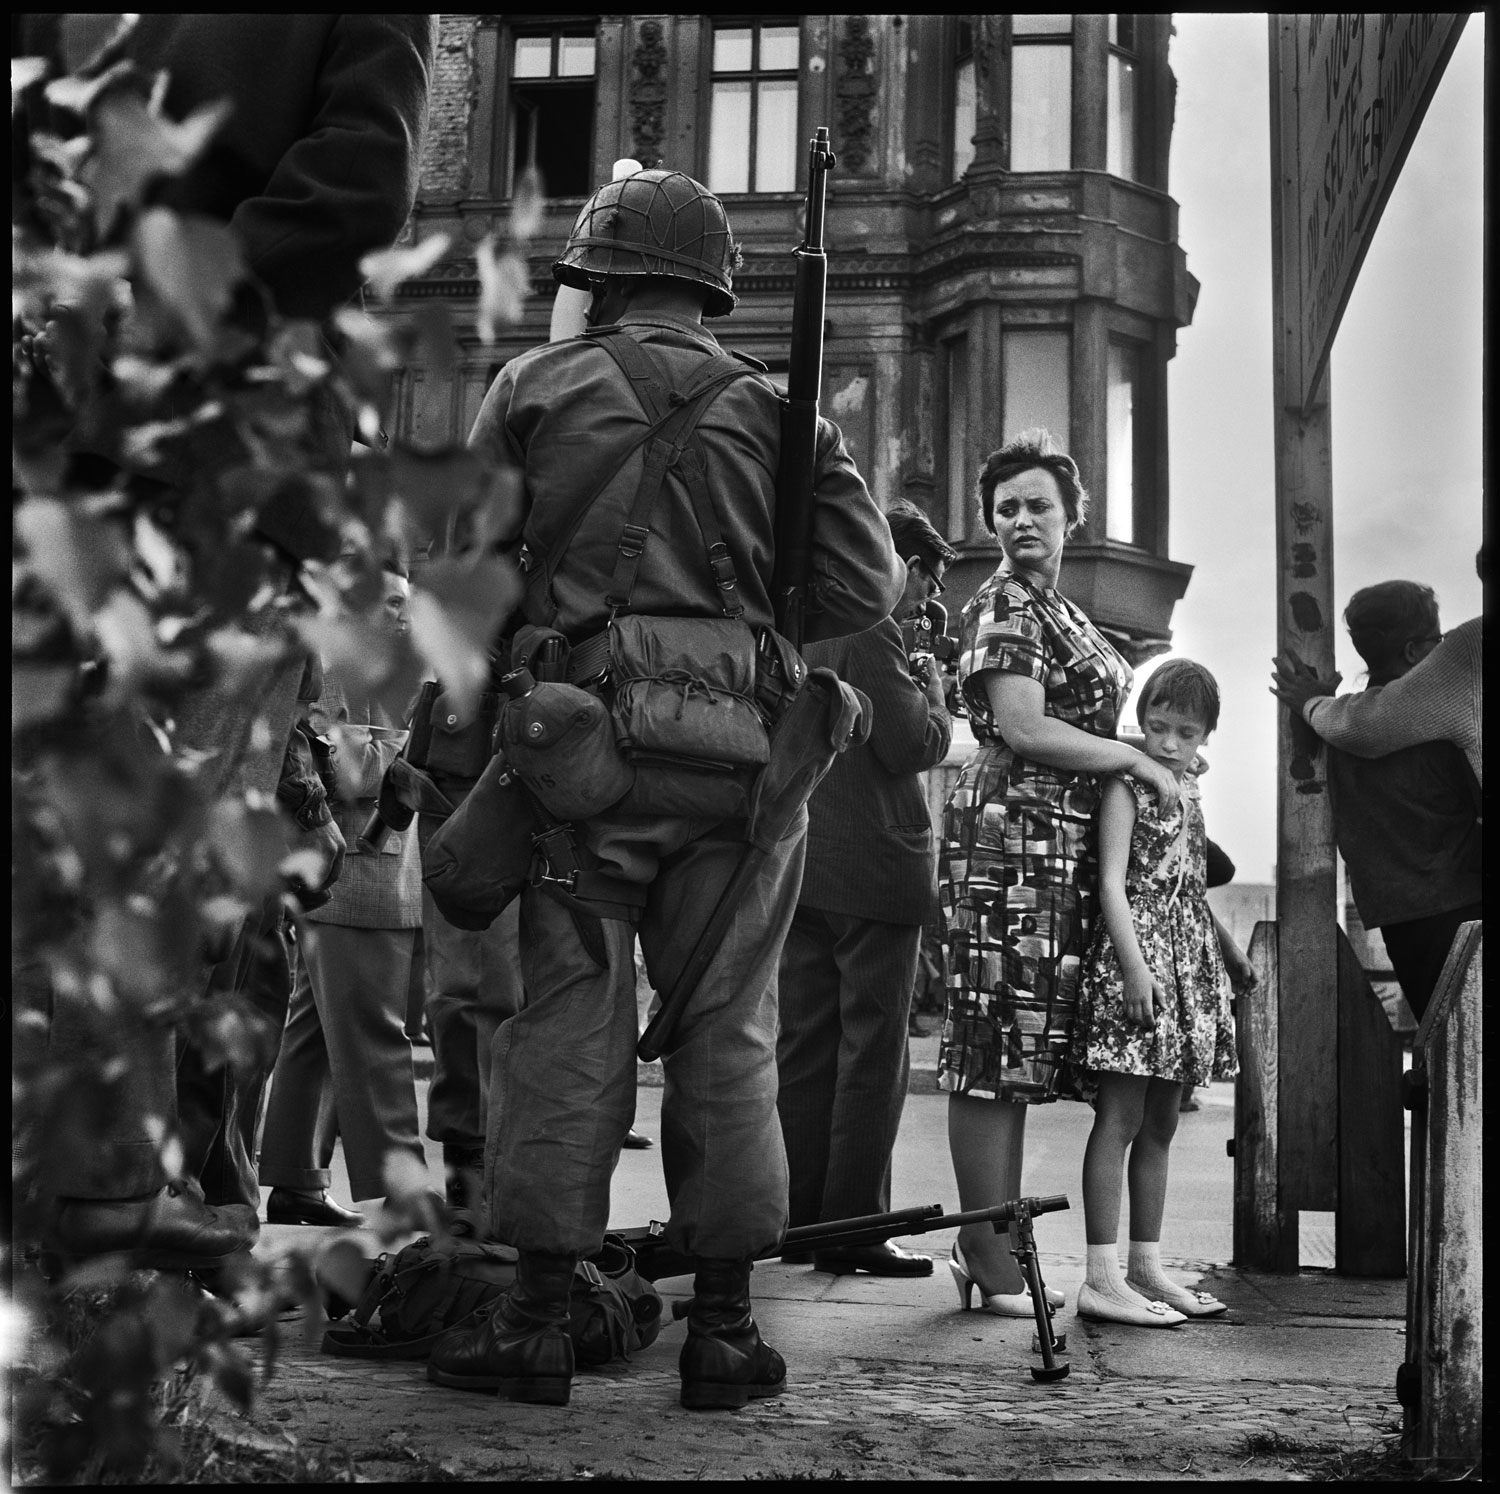 American soldiers, Friedrichstrasse near Checkpoint Charlie, at the time of the construction of the Berlin Wall, West Berlin, Germany, August 1961